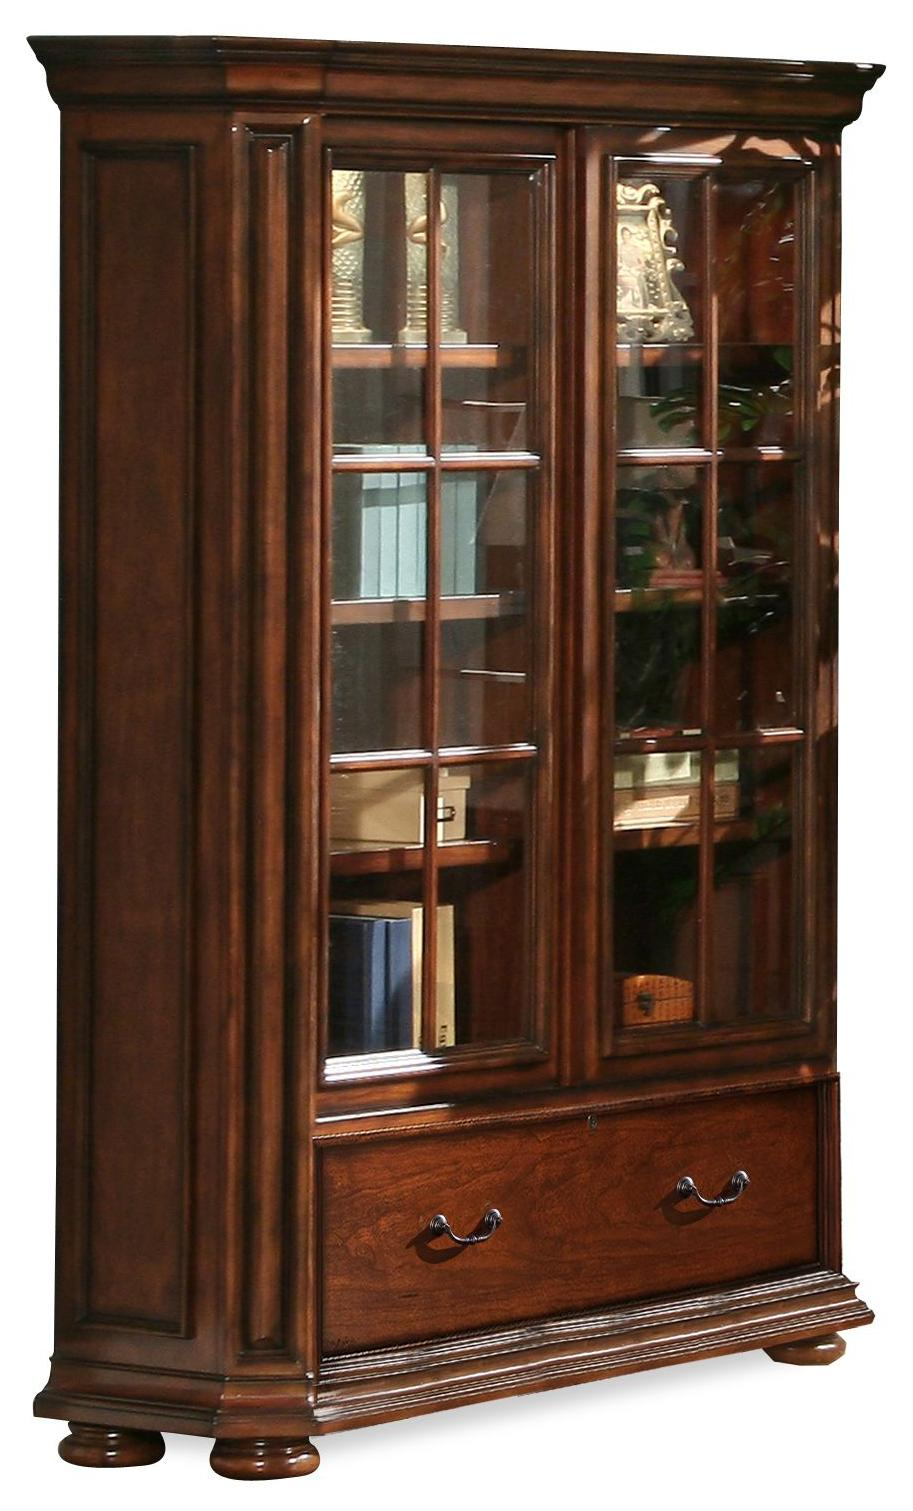 Riverside Furniture Cantata 76 Inch Bookcase - Item Number: 4934